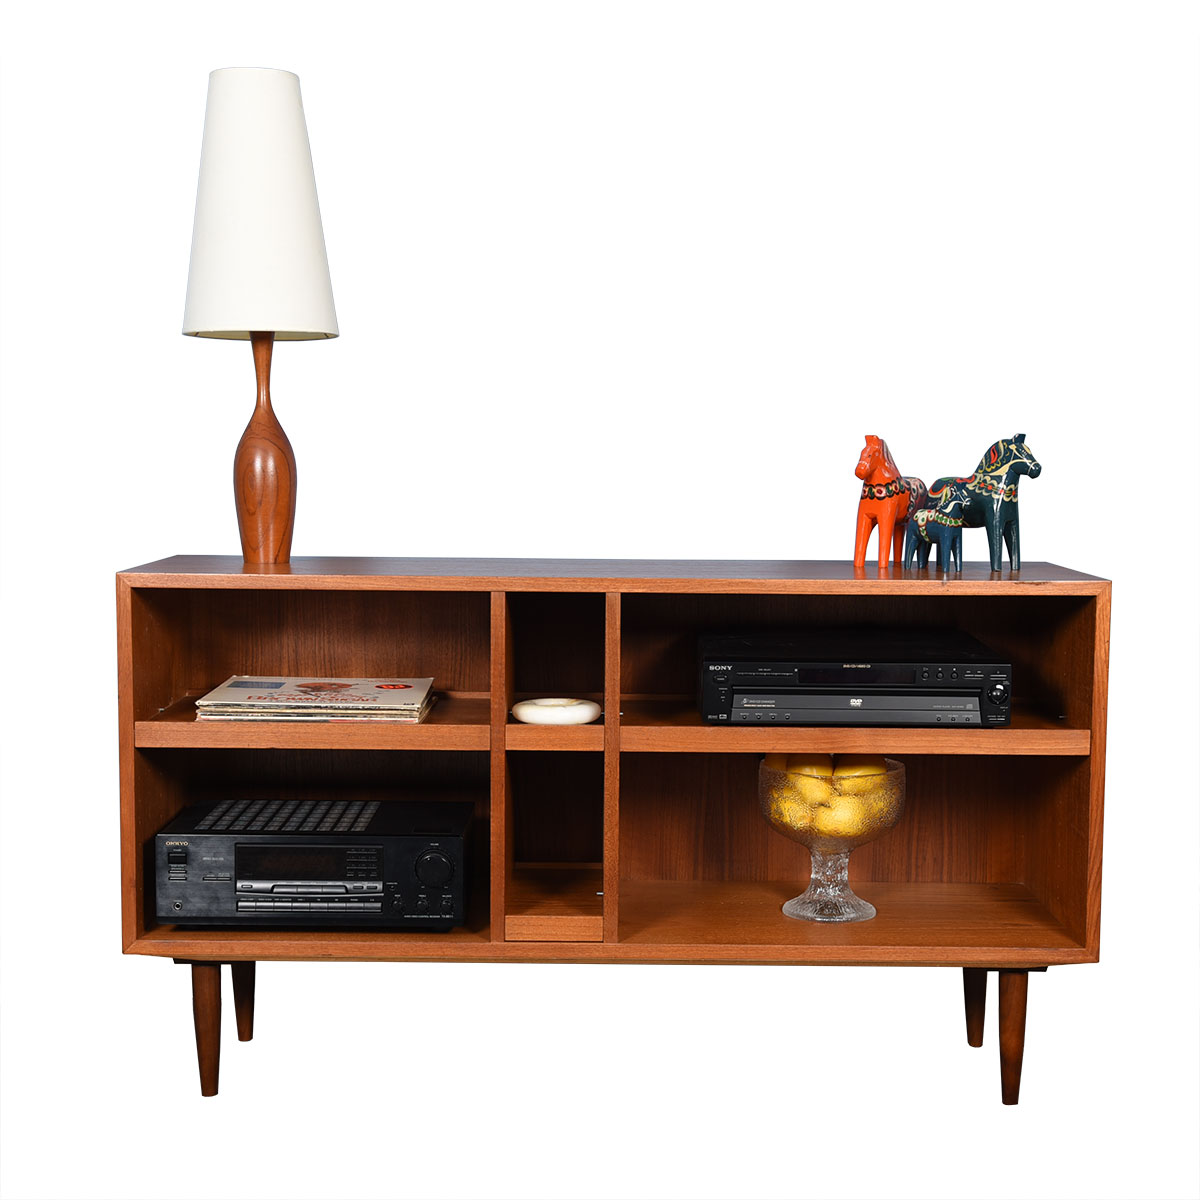 Deep Open Teak Bookcase / Media Cabinet w/ Pull-Out Shelves!